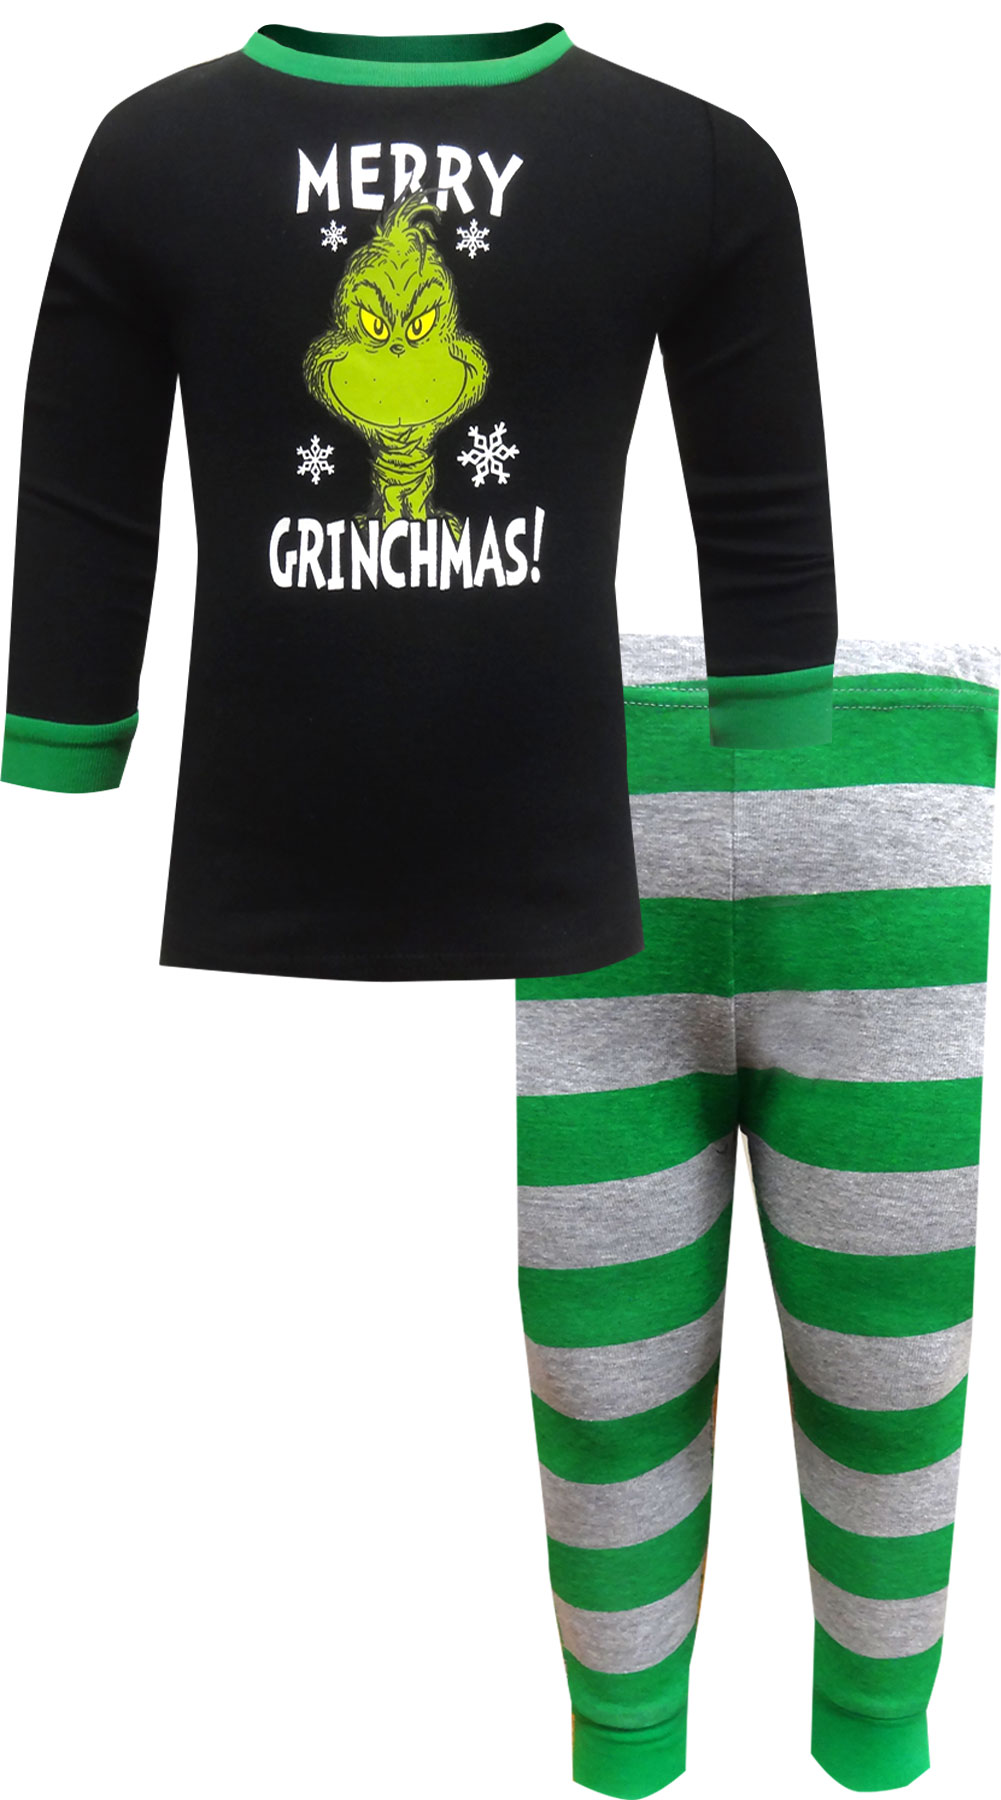 Image of Dr. Seuss The Grinch Merry Grinchmas Toddler Cotton Pajamas for boys